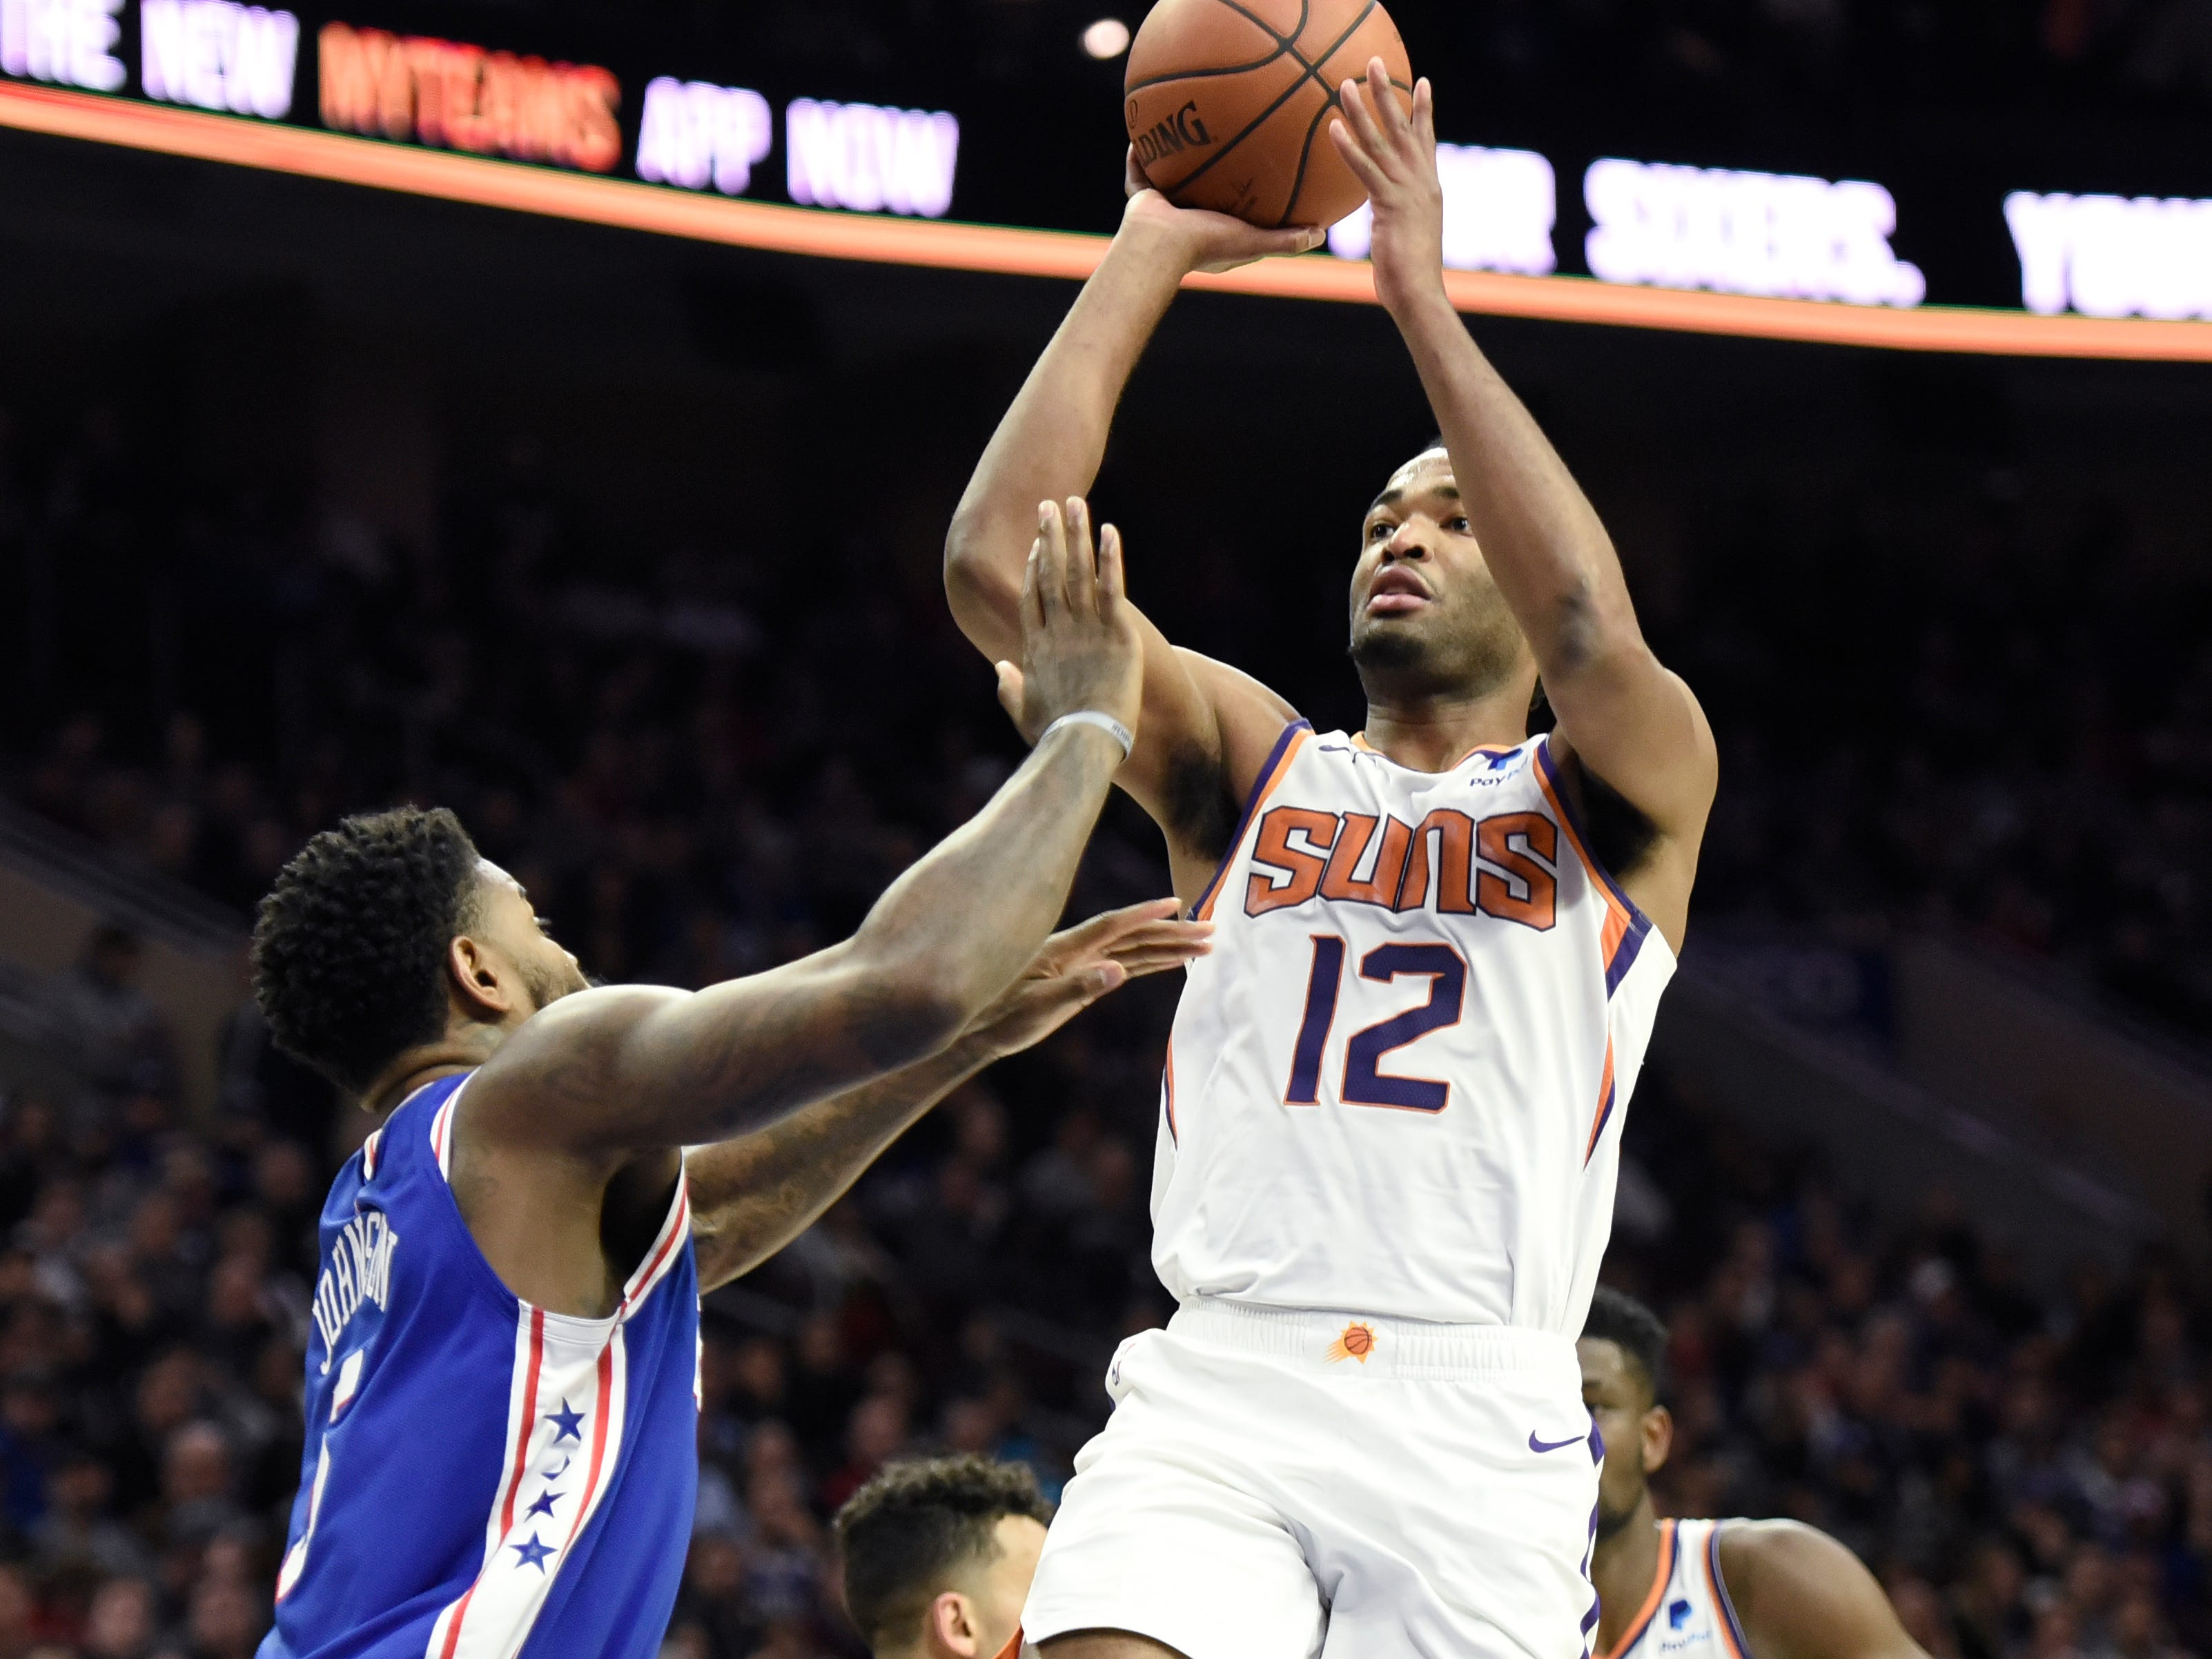 Phoenix Suns' TJ Warren (12) shoots the ball over Philadelphia 76ers' Amir Johnson in the first half of an NBA basketball game, Monday, Nov. 19, 2018, in Philadelphia.